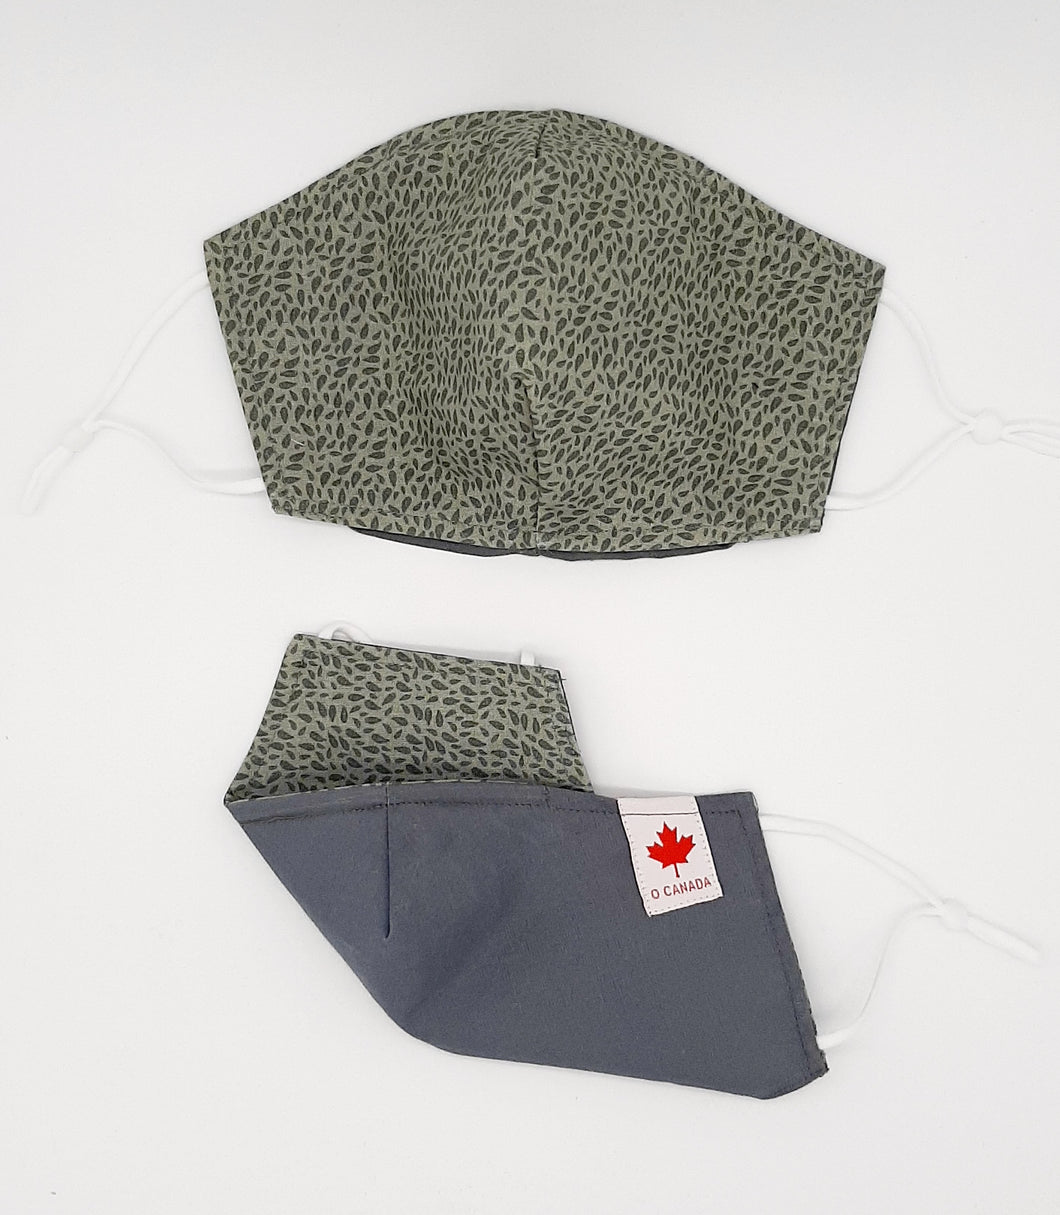 Earth Fall Collection.   Fall Print + Colors one side, solid light Grey color other side.  Reversible for versatility of one mask, two looks.  Fashionable Face Covers that are functional, comfortable + Beautiful. If you have to wear a mask, wear one you LOVE!  Designed + Made in Canada.  Nose wire, adjustable ear loops, two layers of 100% cotton for comfort with integrate filter pocket between the two layer cotton layers.